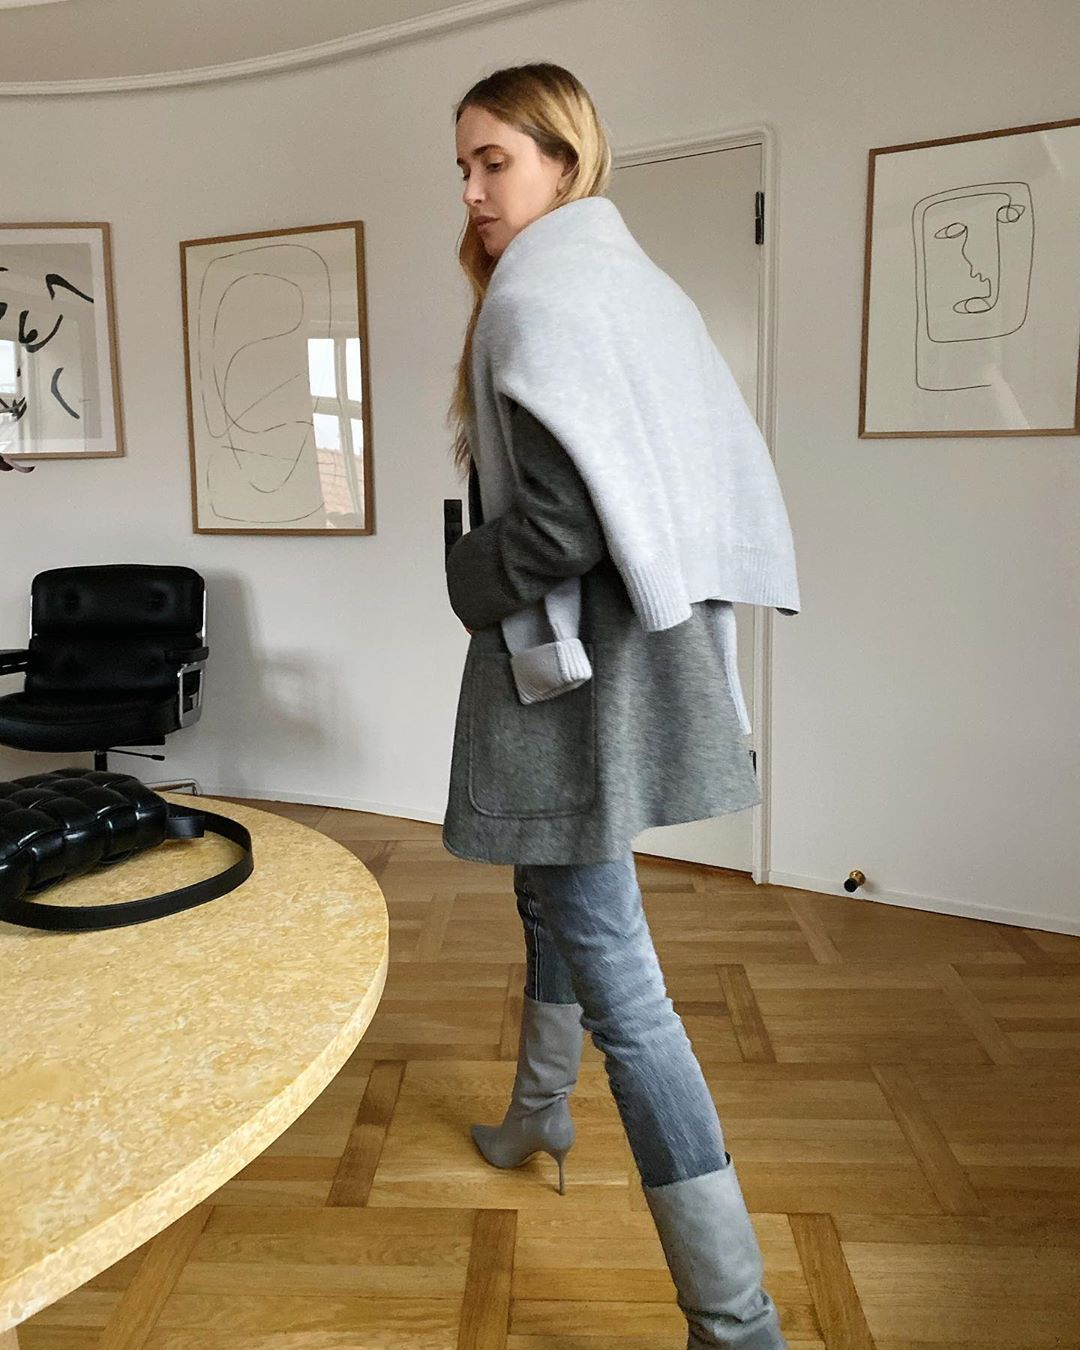 pernille-teisbaek-miu-miu-gray-leather-boots-instagram